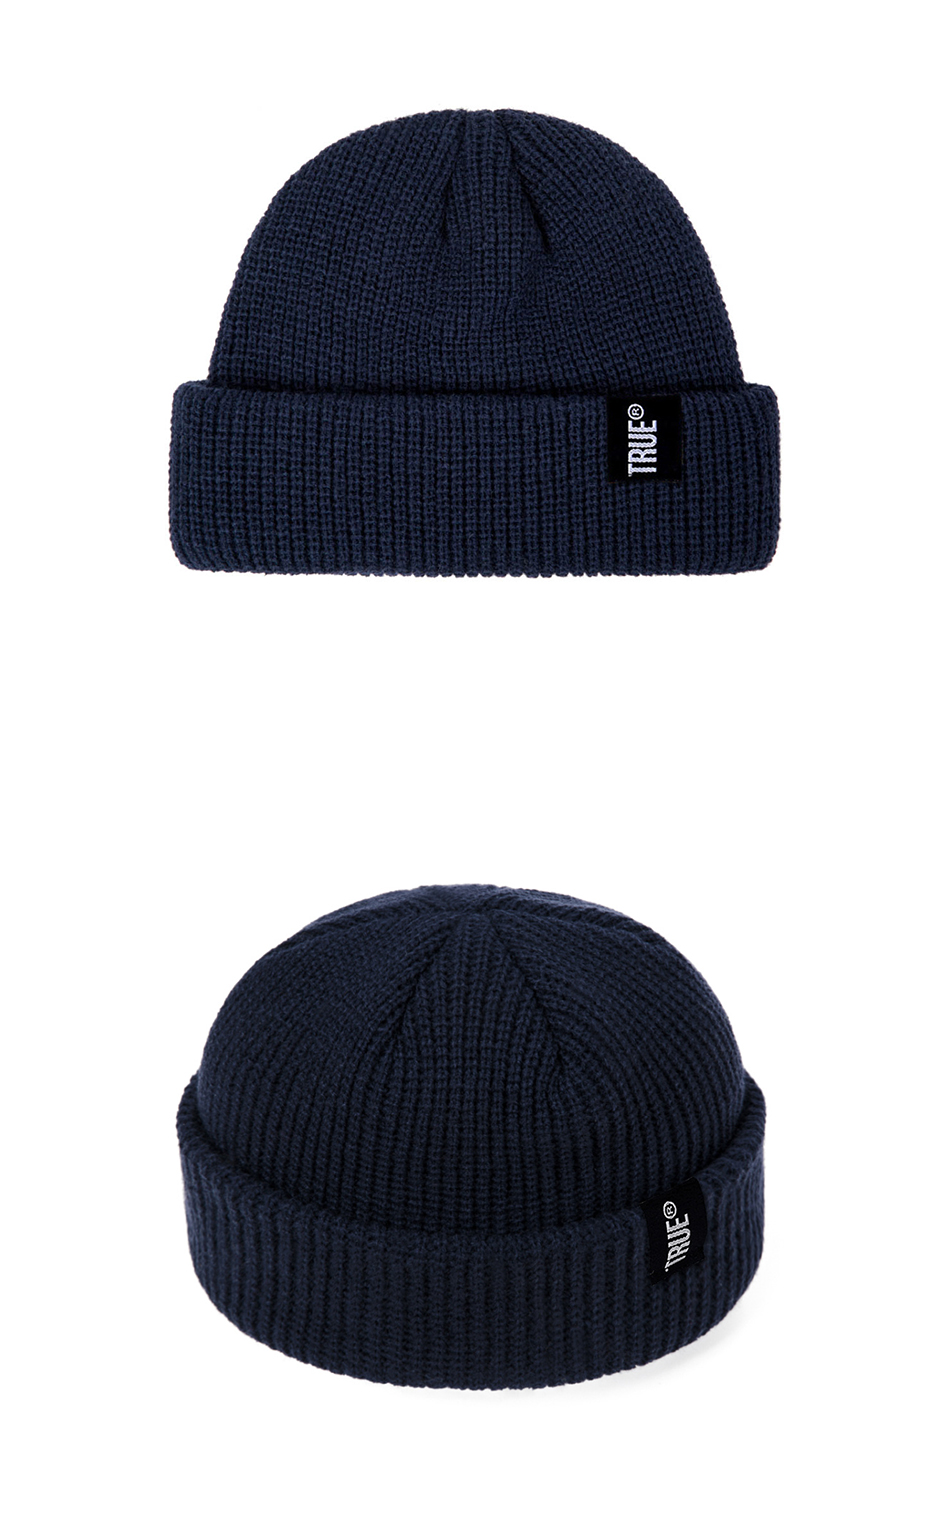 2021 Fashion Unisex Winter Hat Men Cuffed Cib Knit Hat Short Melon Ski Beanies Autumn Winter Solid Color Casual Beanie Hat 23